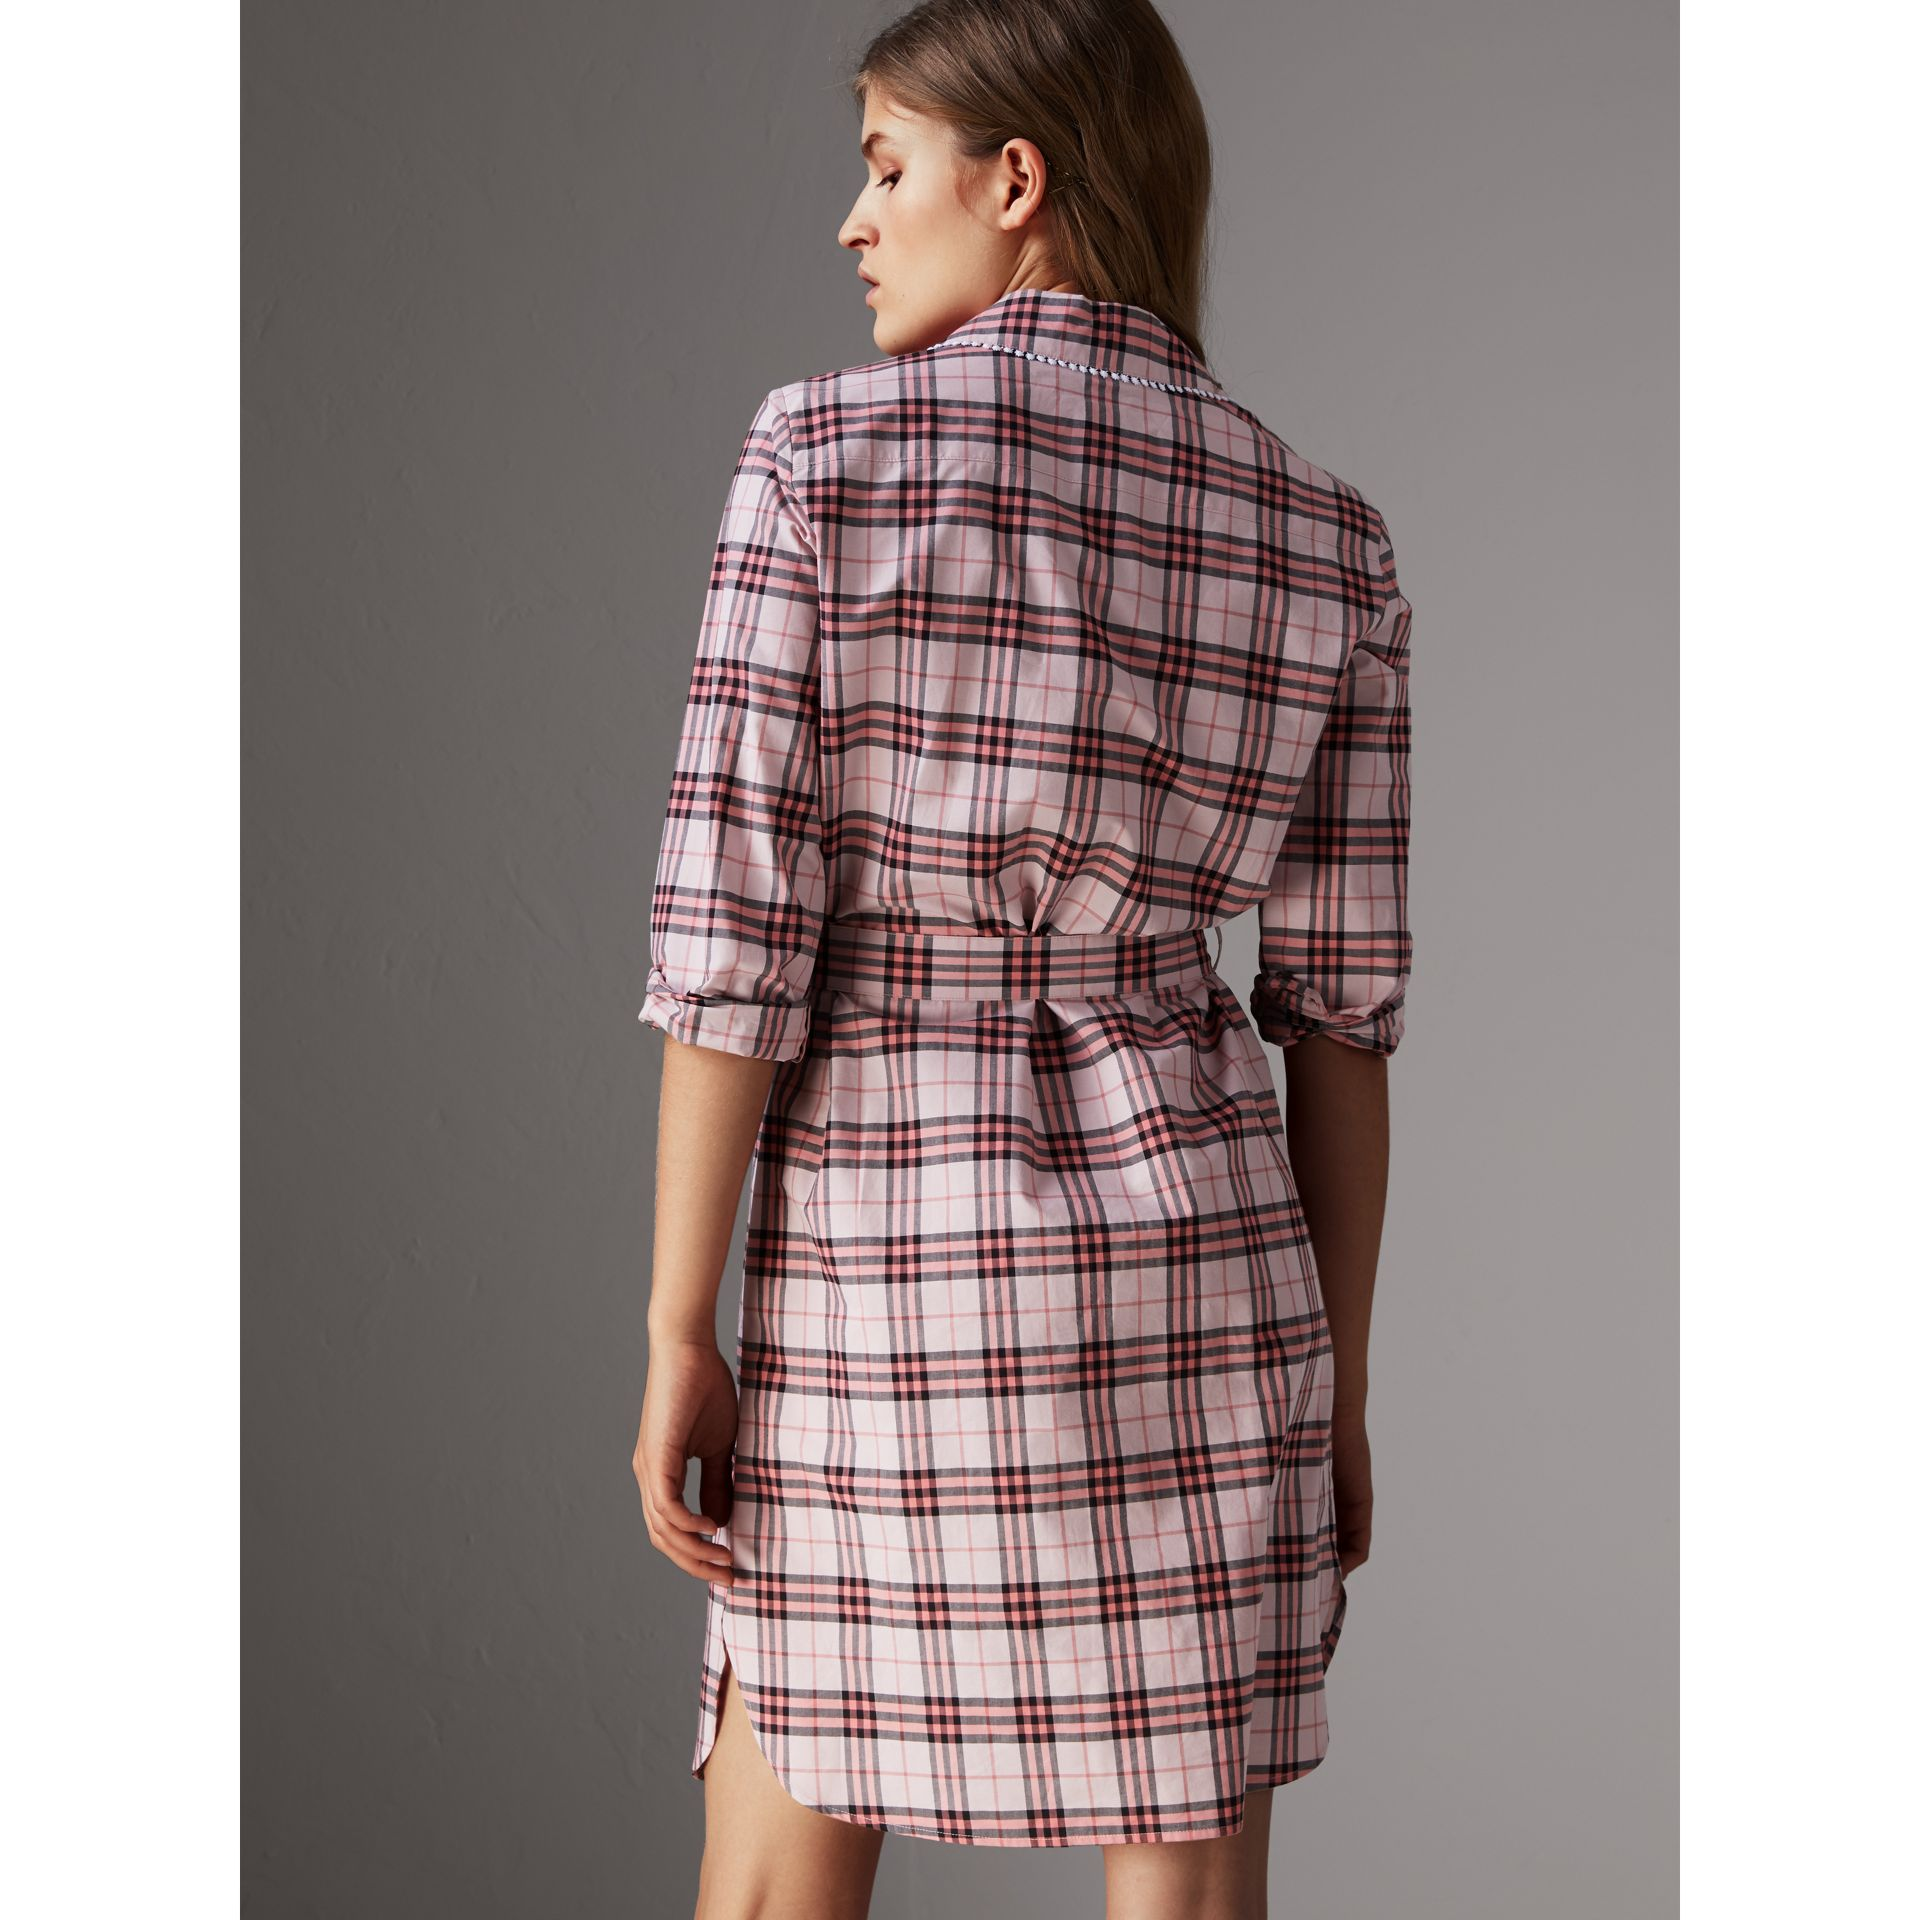 Lace Trim Collar Check Cotton Shirt Dress in Pink Azalea - Women | Burberry - gallery image 2